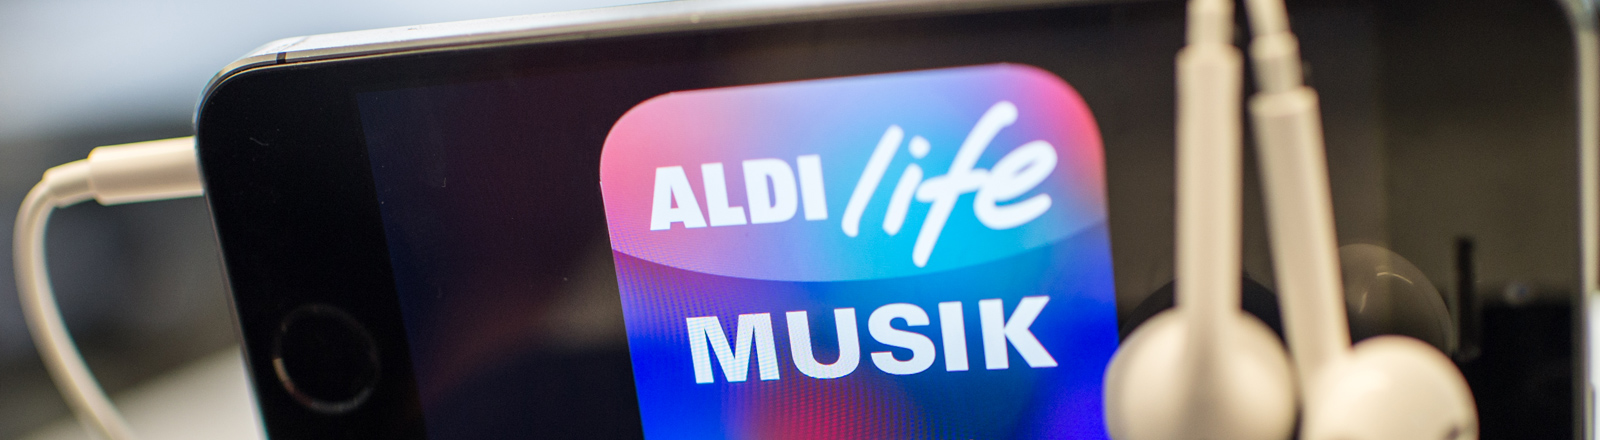 Aldi Life Musik - Streaming-Dienst in Kooperation mit Napster